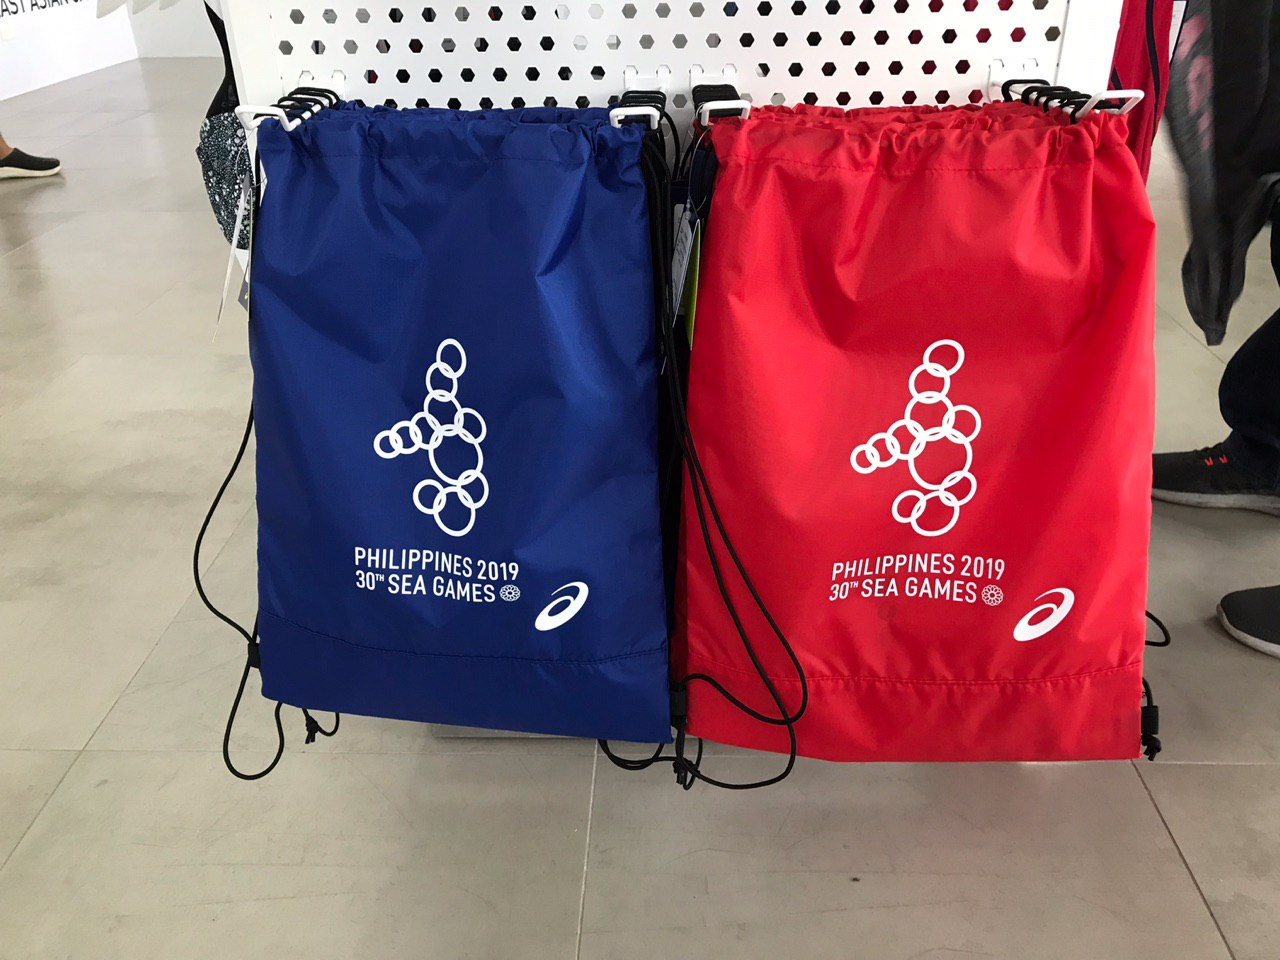 LIGHTWEIGHT. The Asics drawstring bag comes in blue and red. Photo by Beatrice Go/Rappler